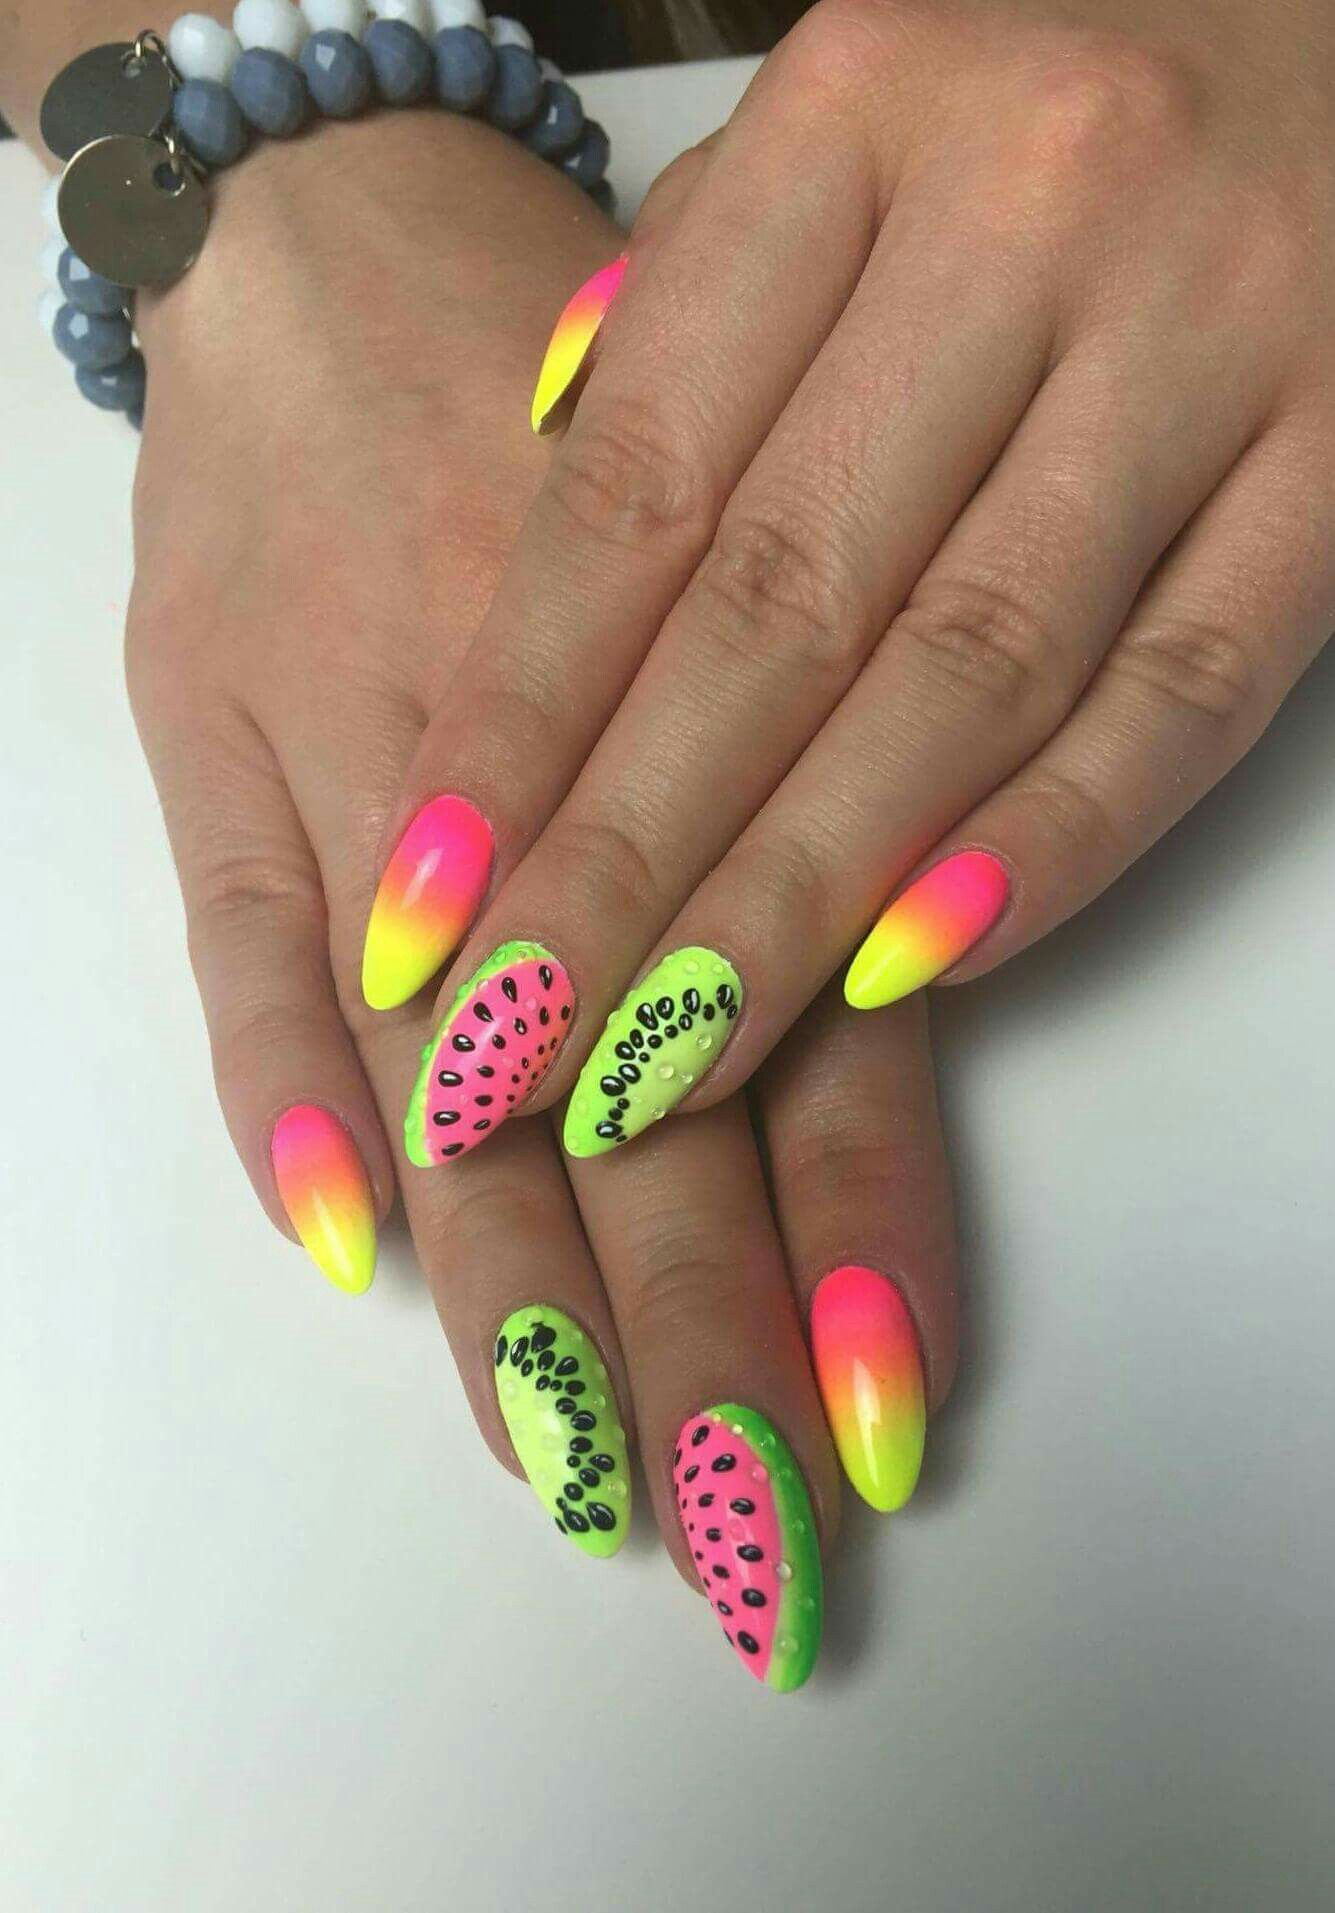 Pin By Naninails On Summer Nail Art Gelove Nehty Nail Art Nehty